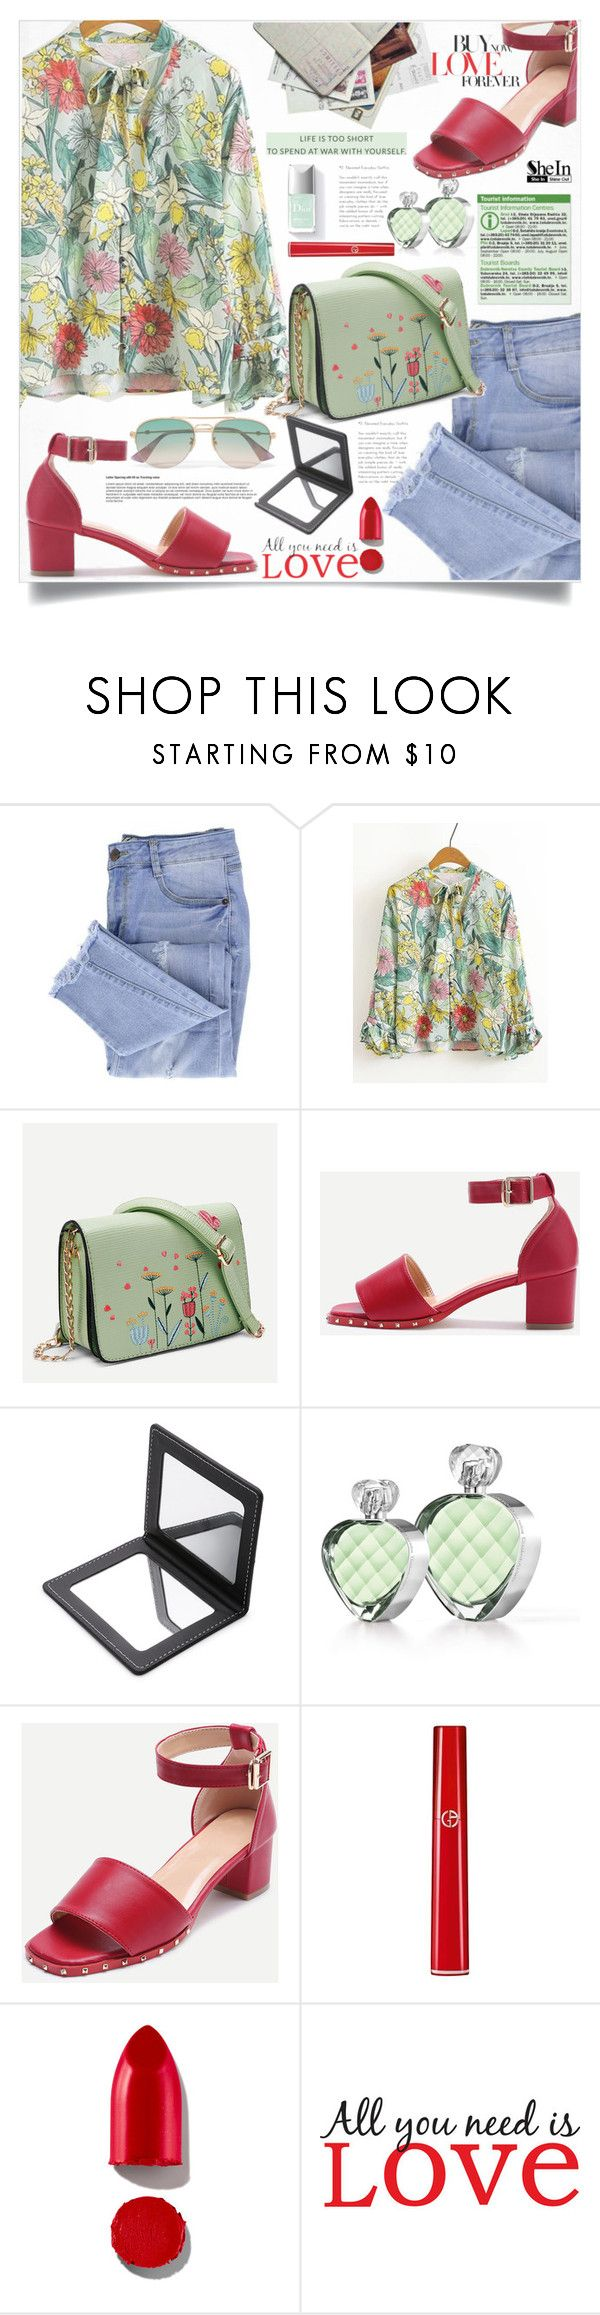 """""""Shein Green&Red Style"""" by lillili25 ❤ liked on Polyvore featuring Essie, Elizabeth Arden, Armani Beauty, Rodin, WALL and Gucci"""